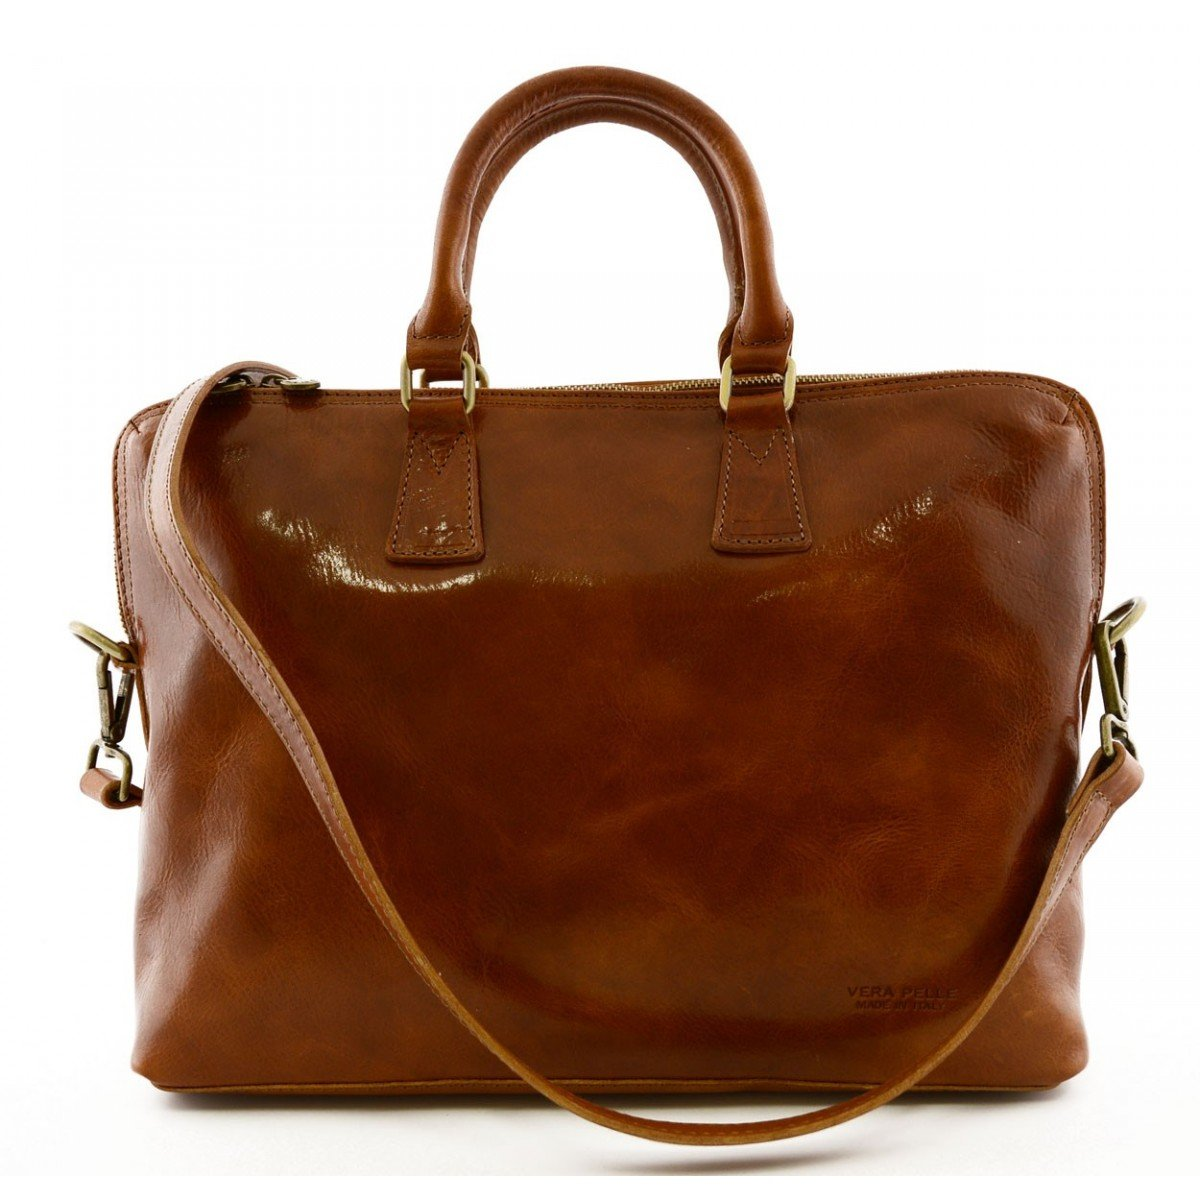 Made In Italy Genuine Leather A4 Document Folder With Removable Strap Color Cognac - Business Bag   B018W38Z2Q